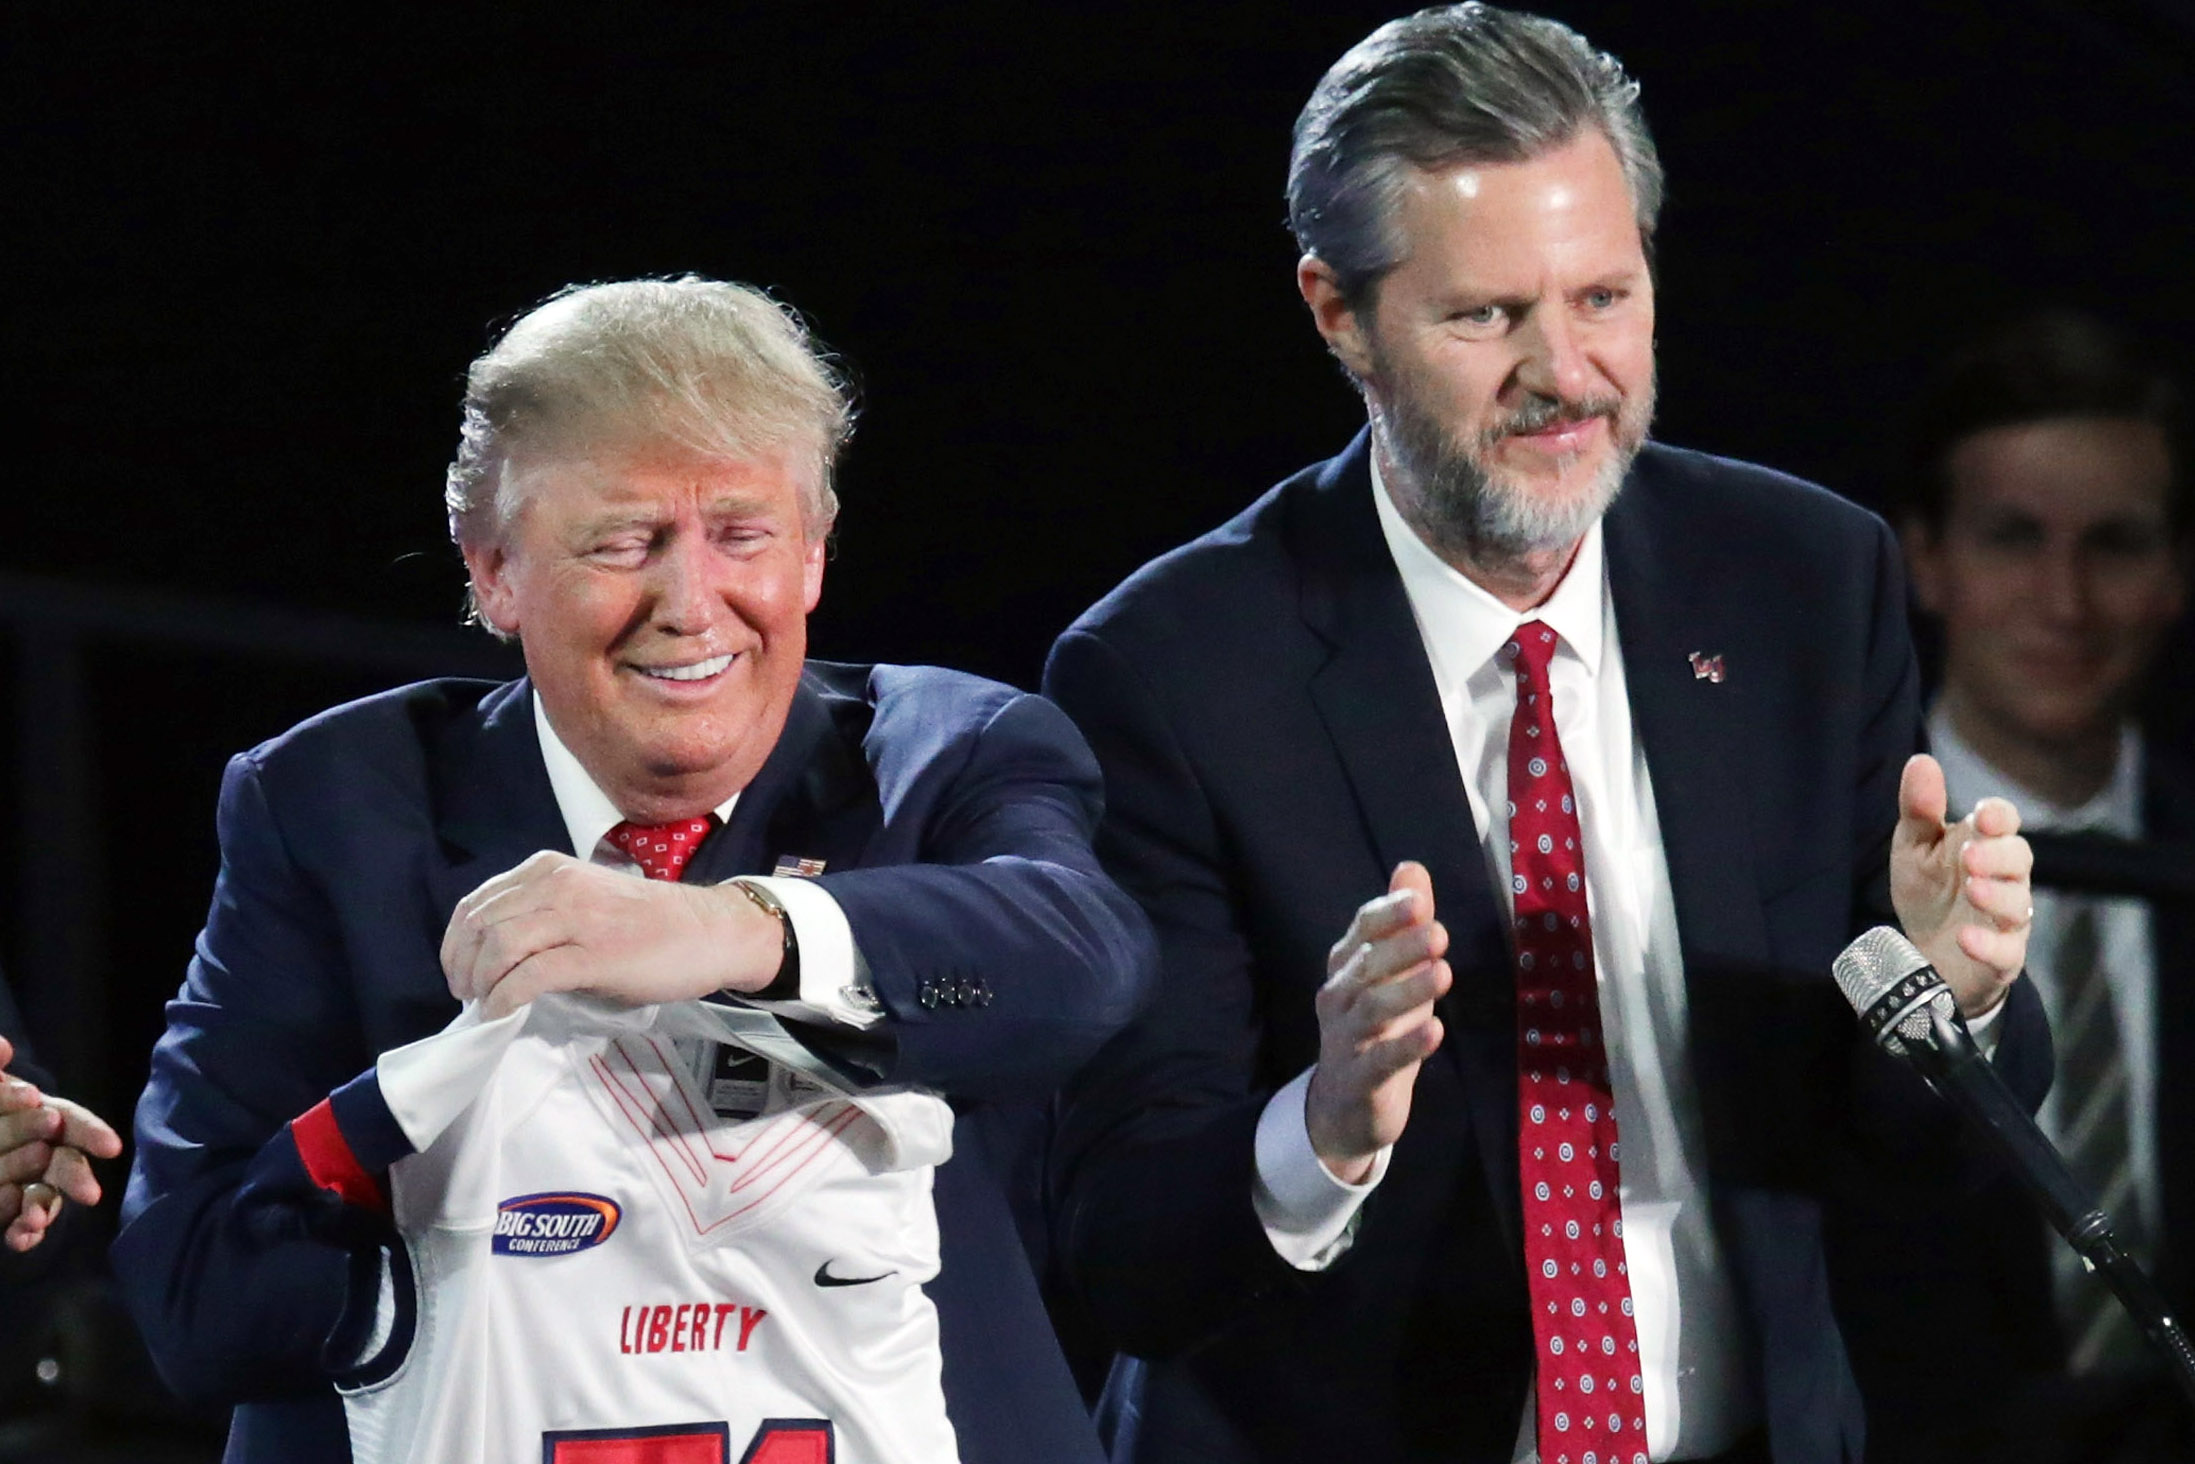 Jerry Falwell, Jr. presents Republican presidential candidate Donald Trump with a sports jersey after he delivered the convocation on Jan. 18, 2016 in Lynchburg, Va.